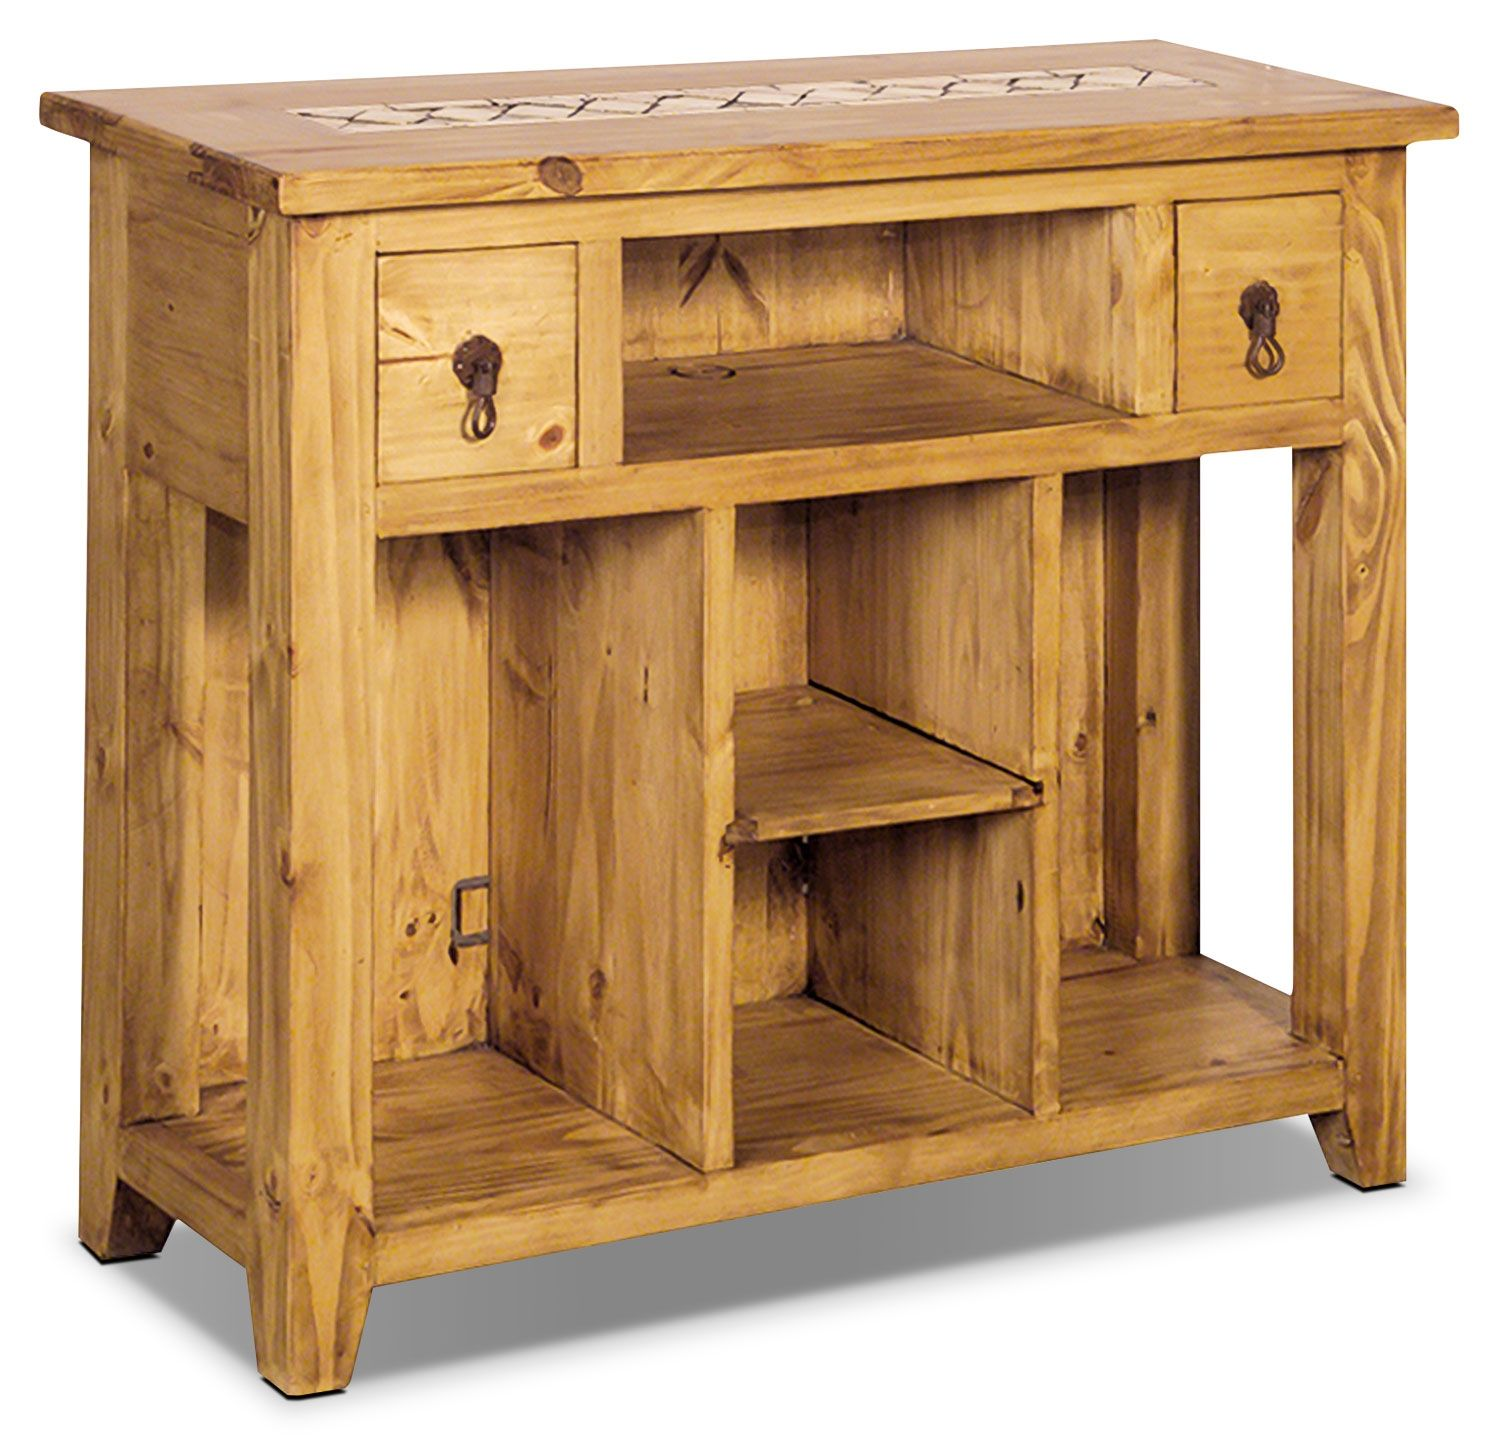 Santa Fe Rusticos Solid Pine Sofa Table With Marble Inset The Brick